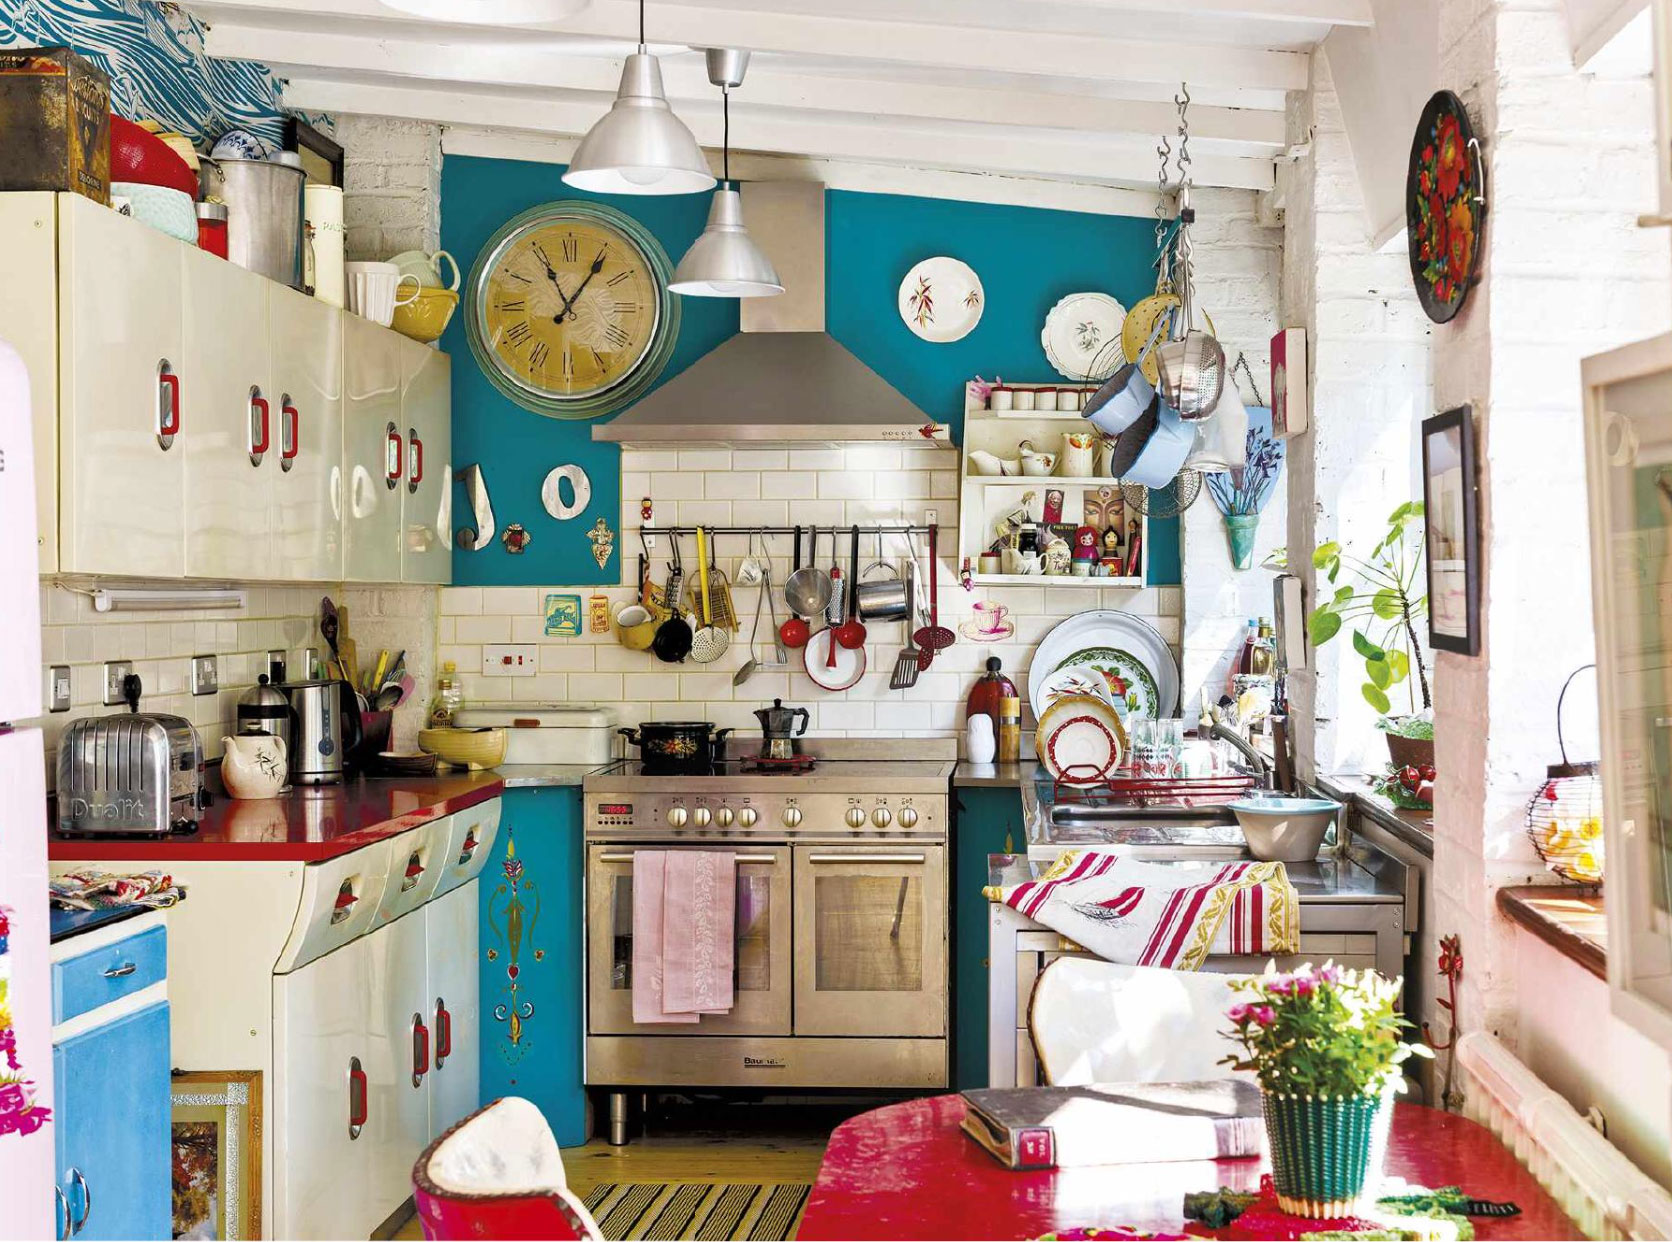 Retro Style Kitchen Top 15 Stunning Kitchen Design Ideas Plus Their Costs